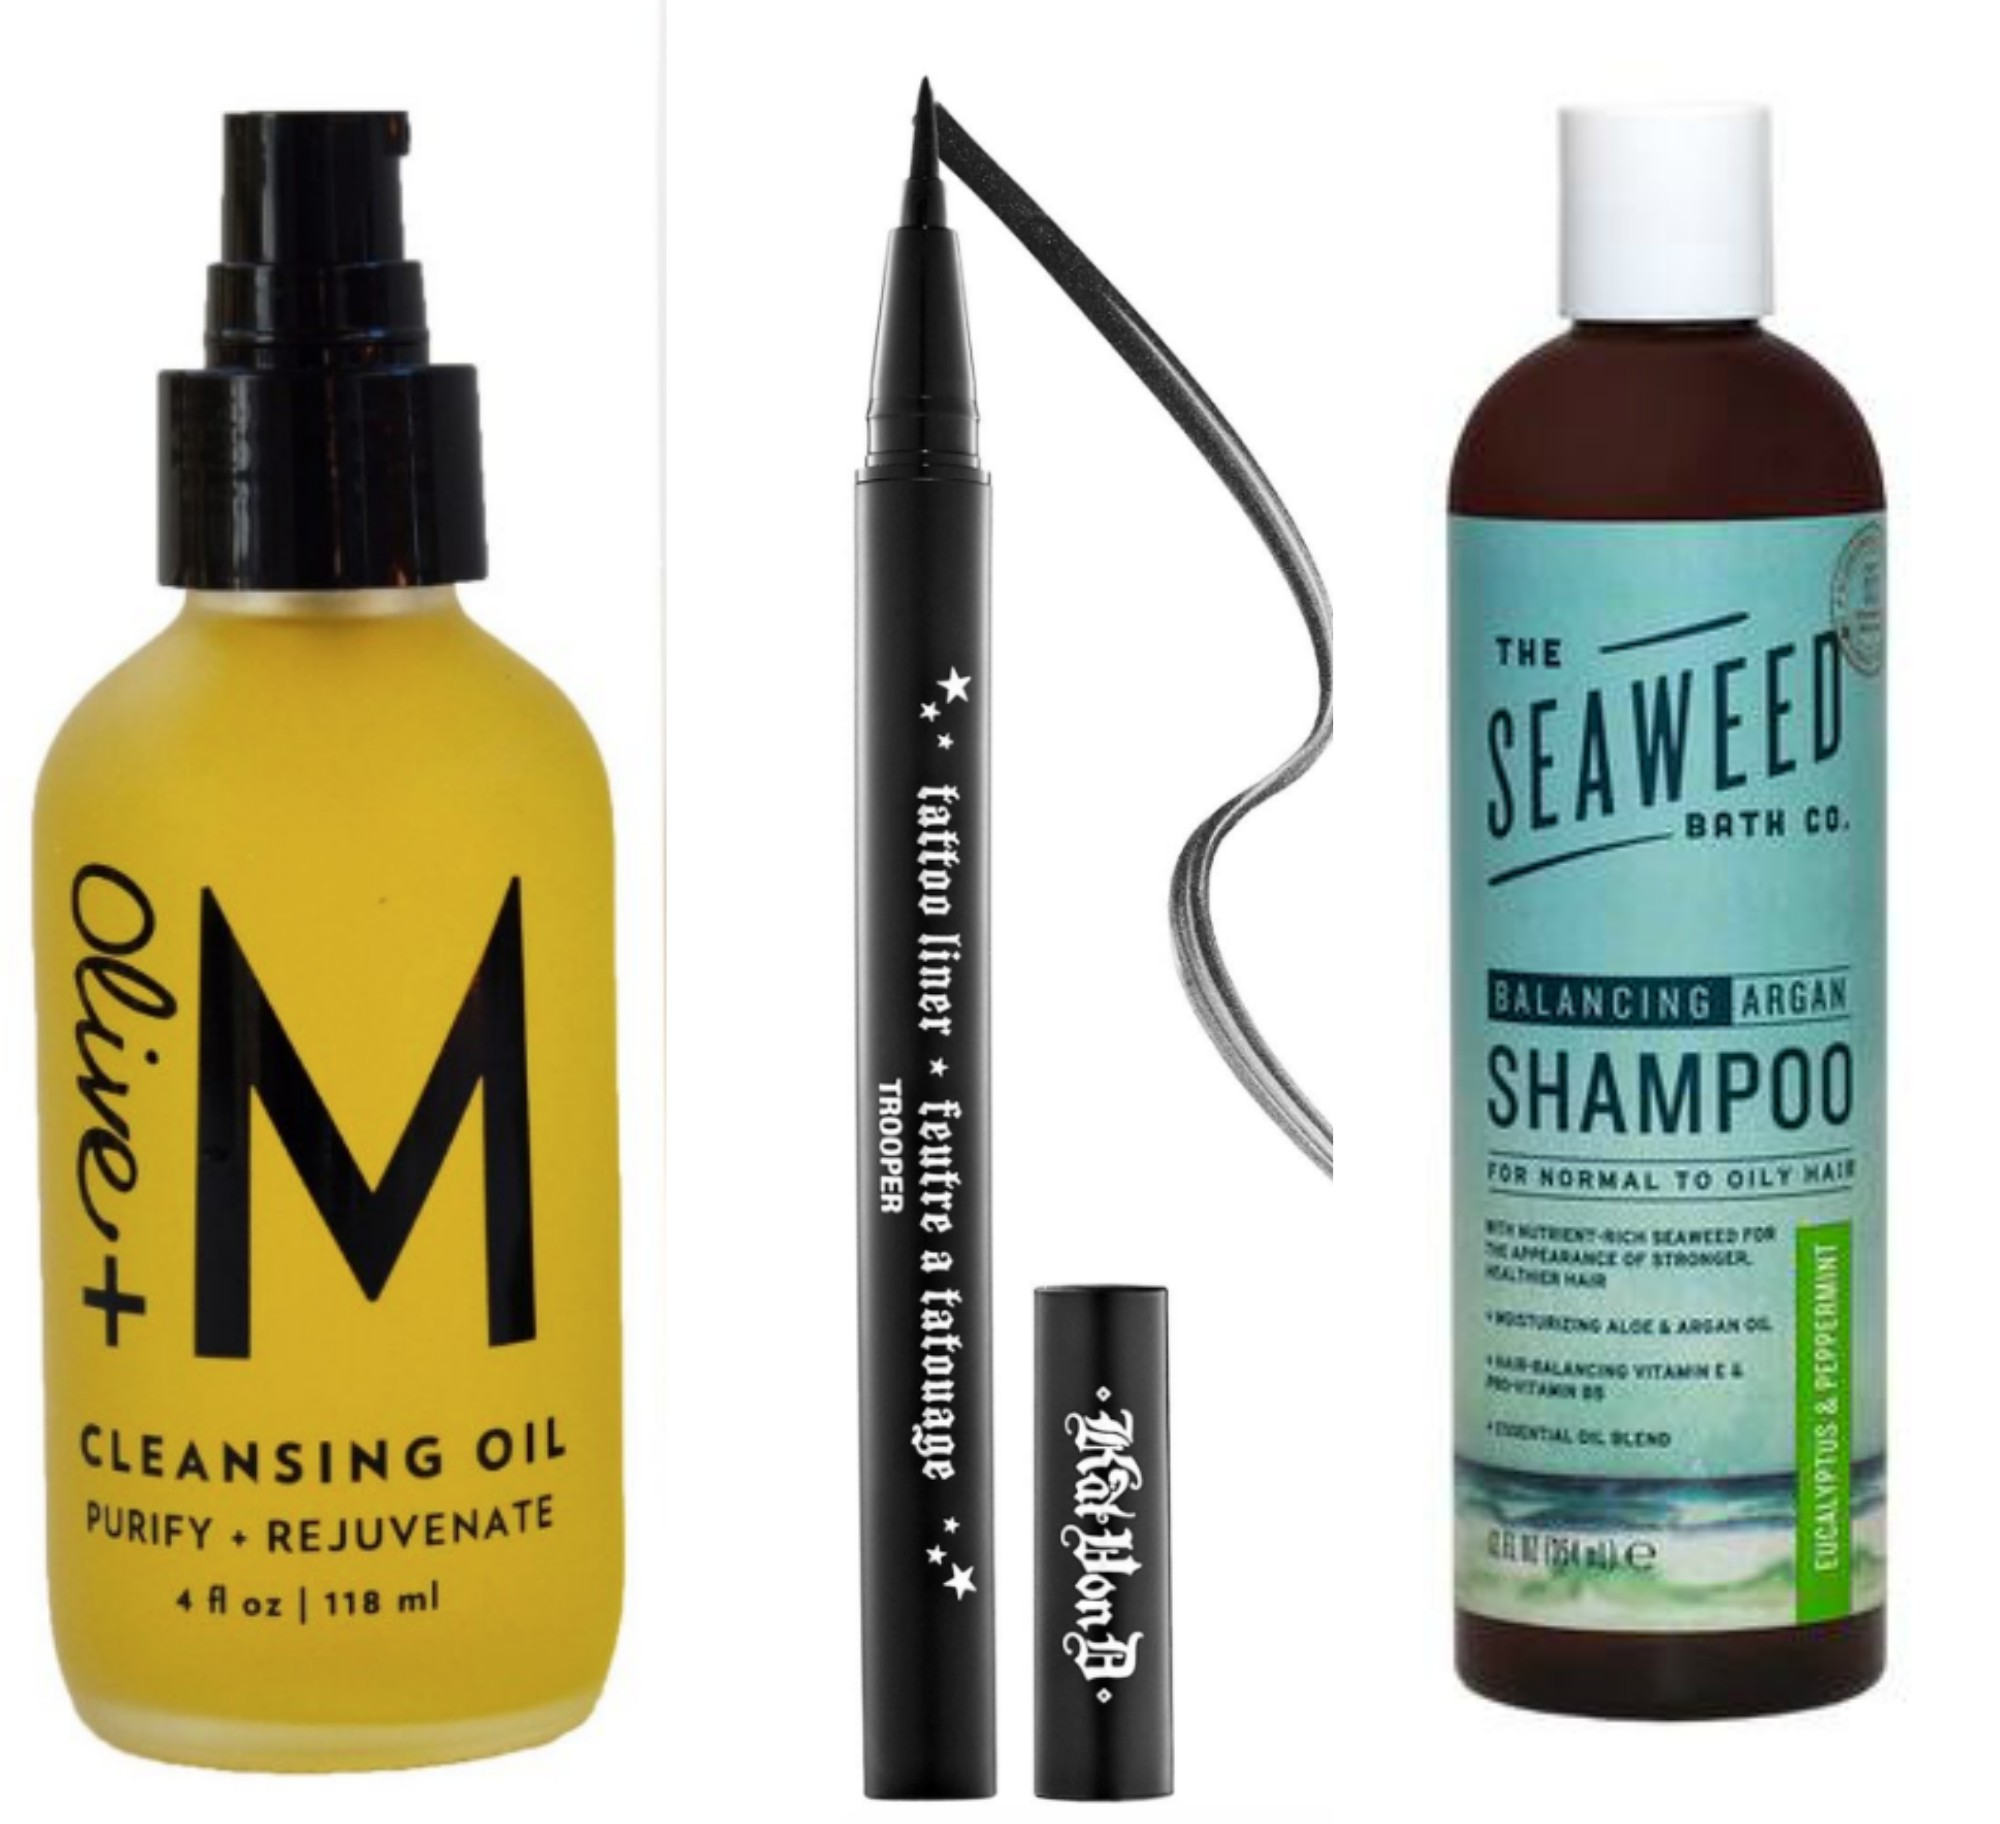 For World Vegan Day, here are 13 vegan beauty brands to have on your radar